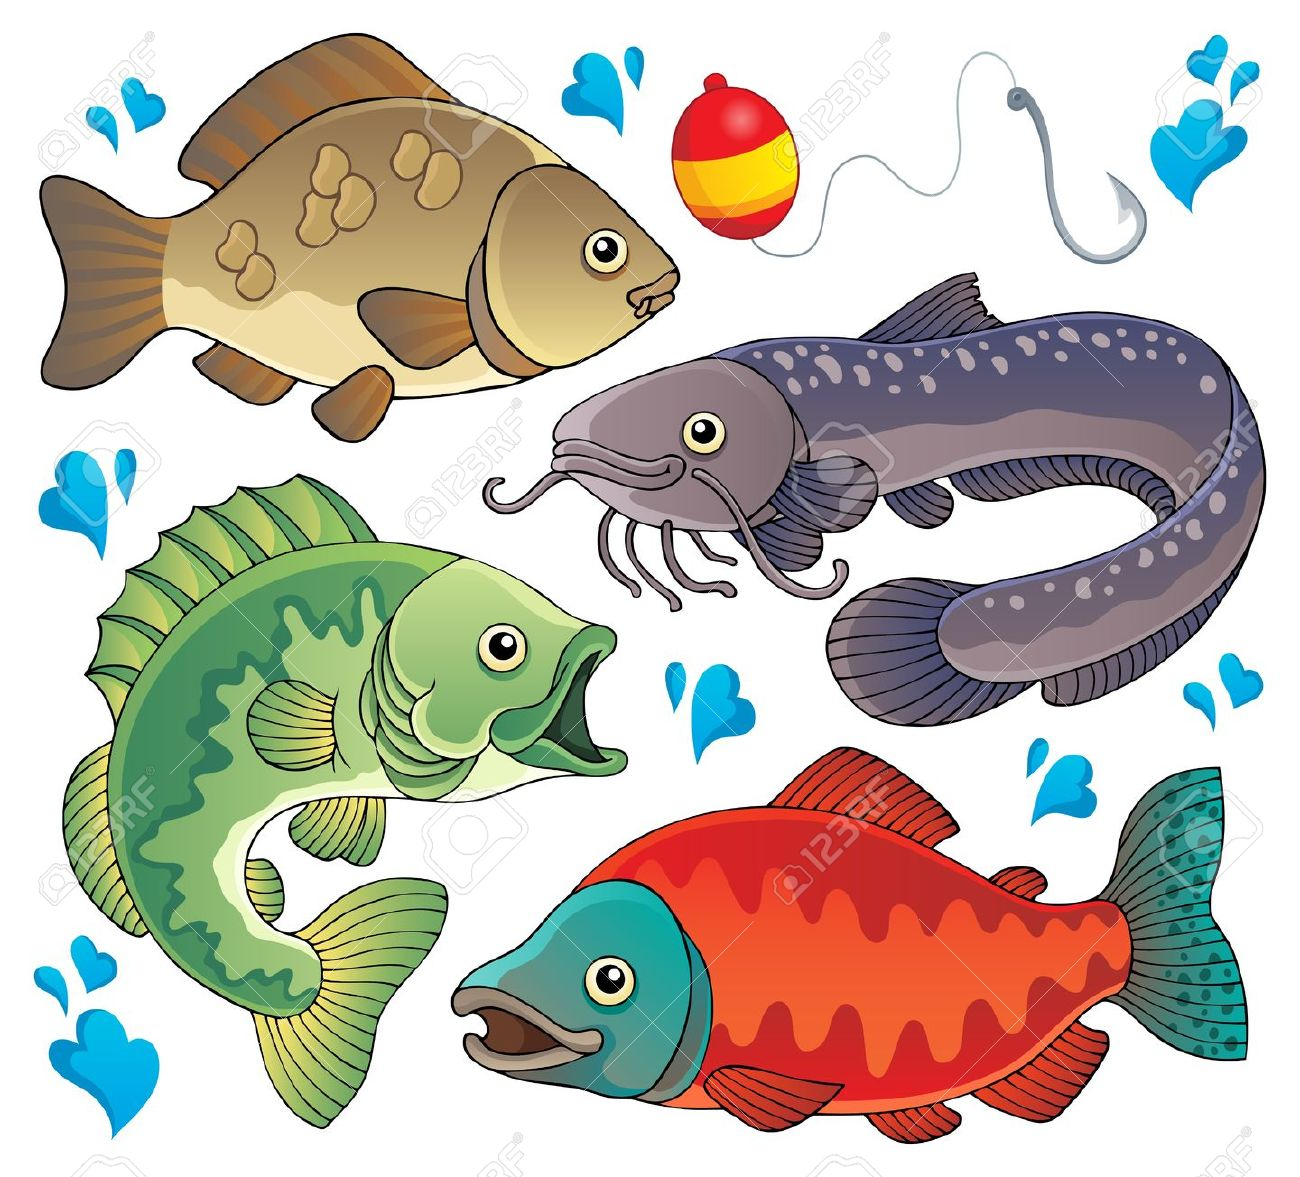 Freshwater fish clipart -